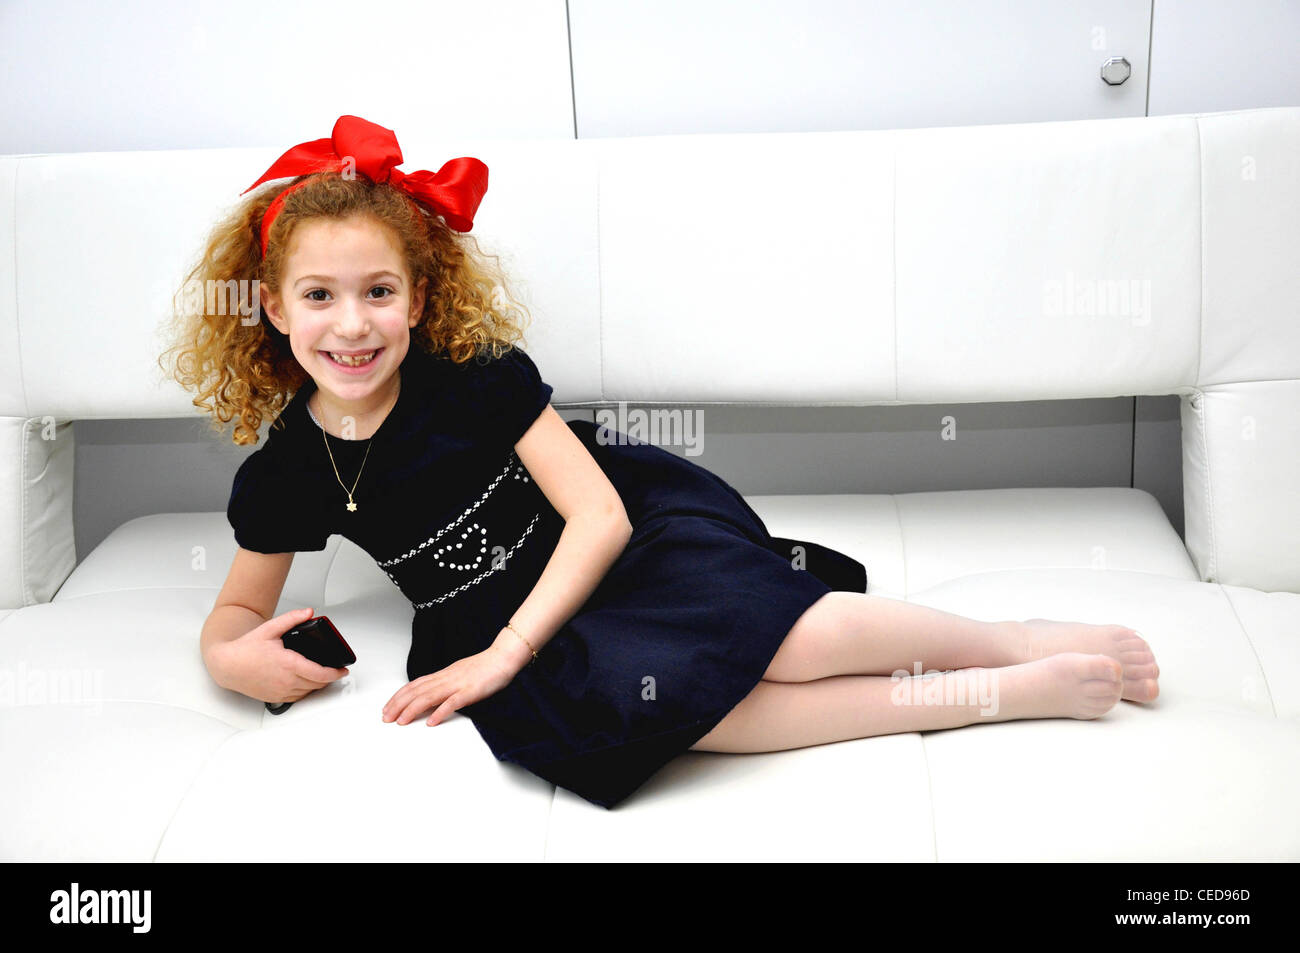 Girl with a red bow smiling curly cute - Stock Image